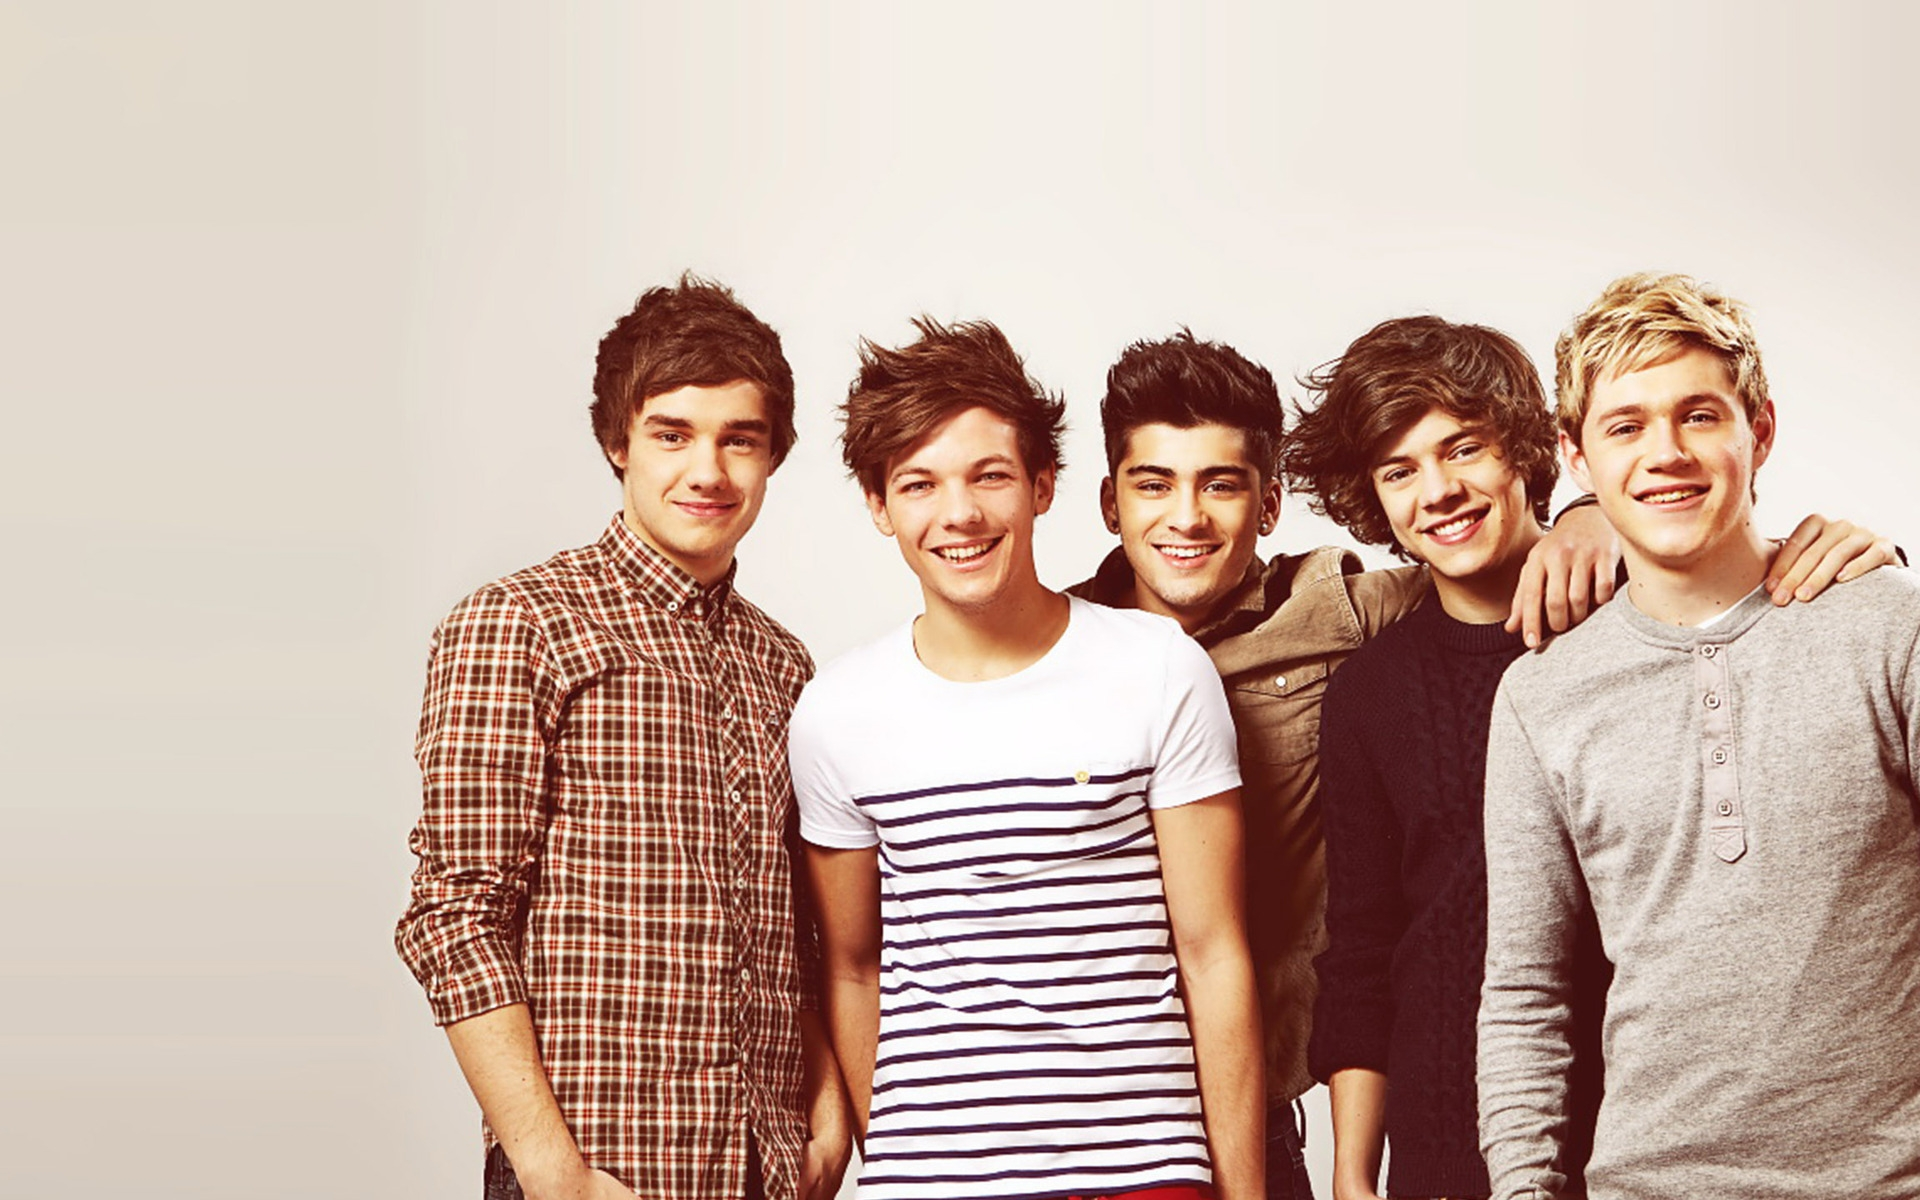 One Direction Young for 1920 x 1200 widescreen resolution